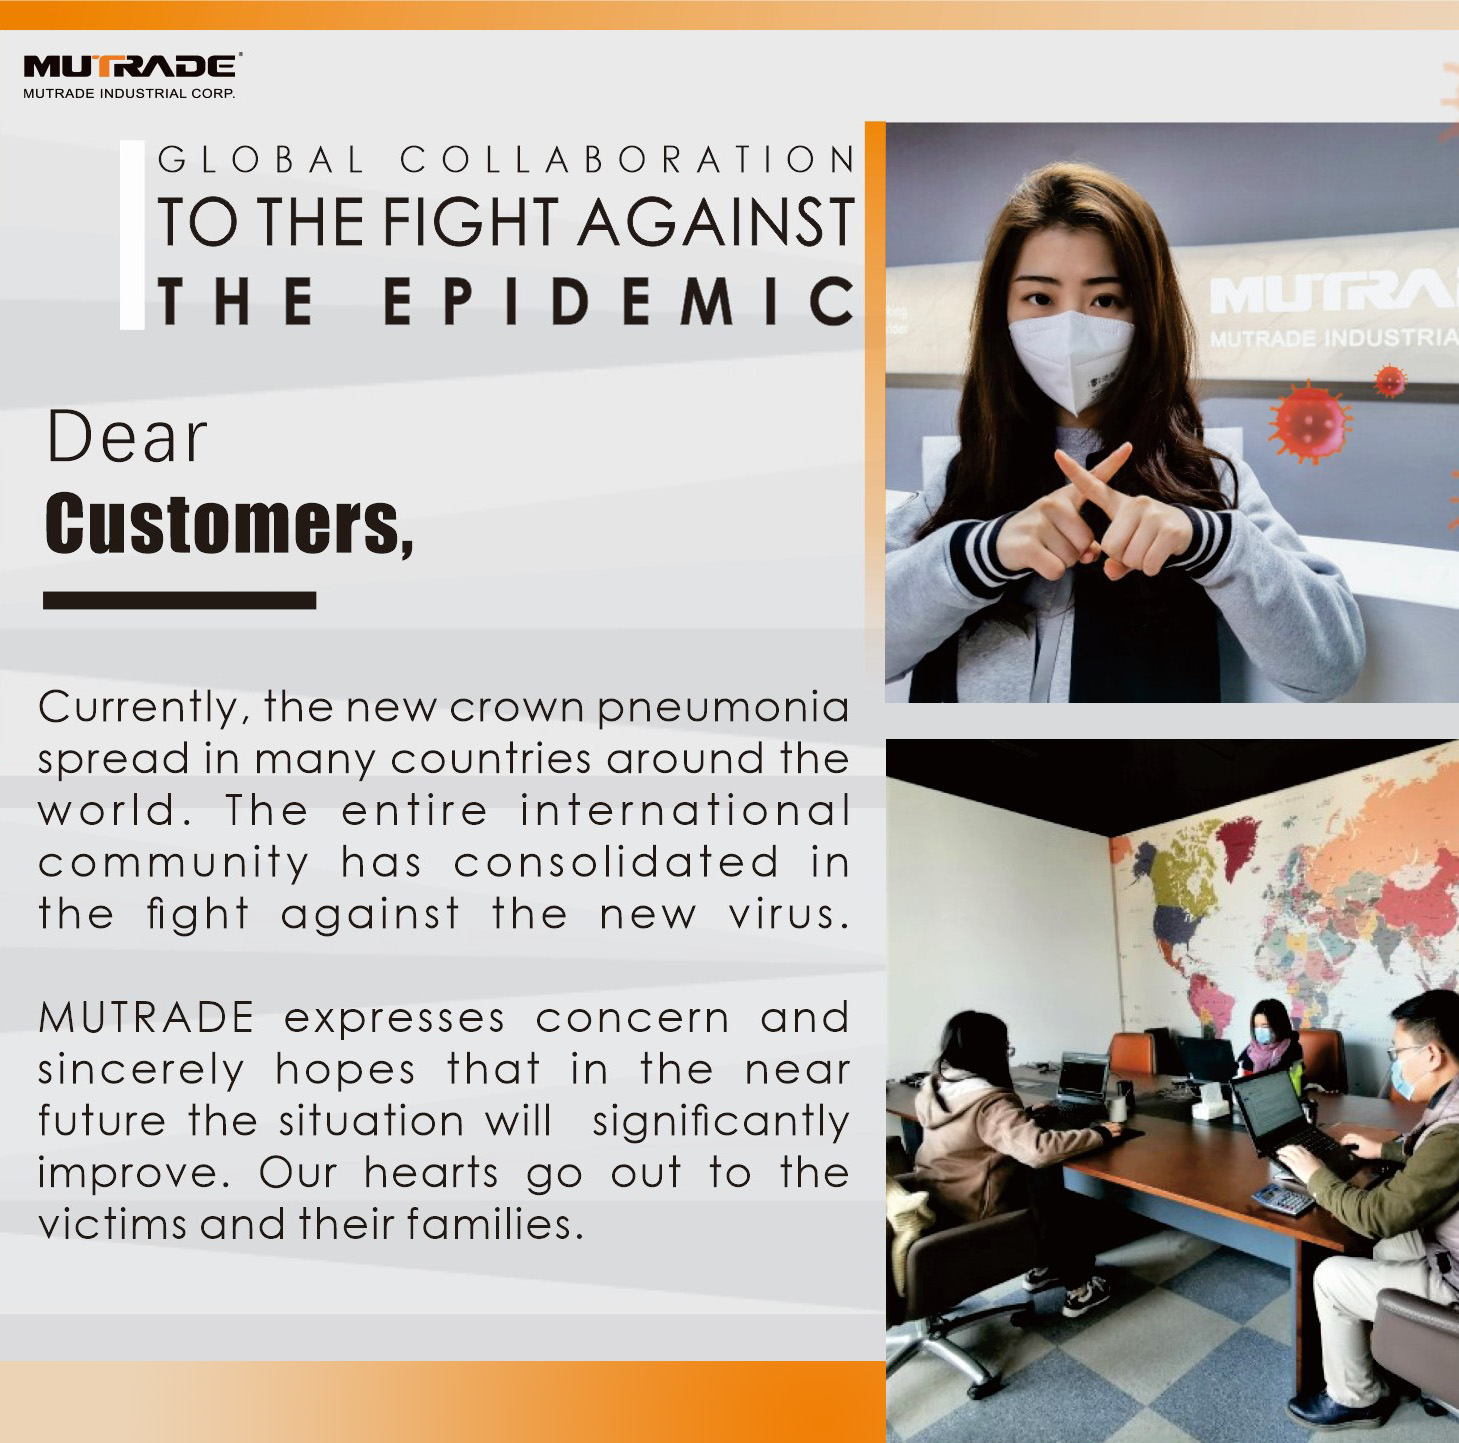 GLOBAL COLLABORATION TO THE FIGHT AGAINST THE EPIDEMIC